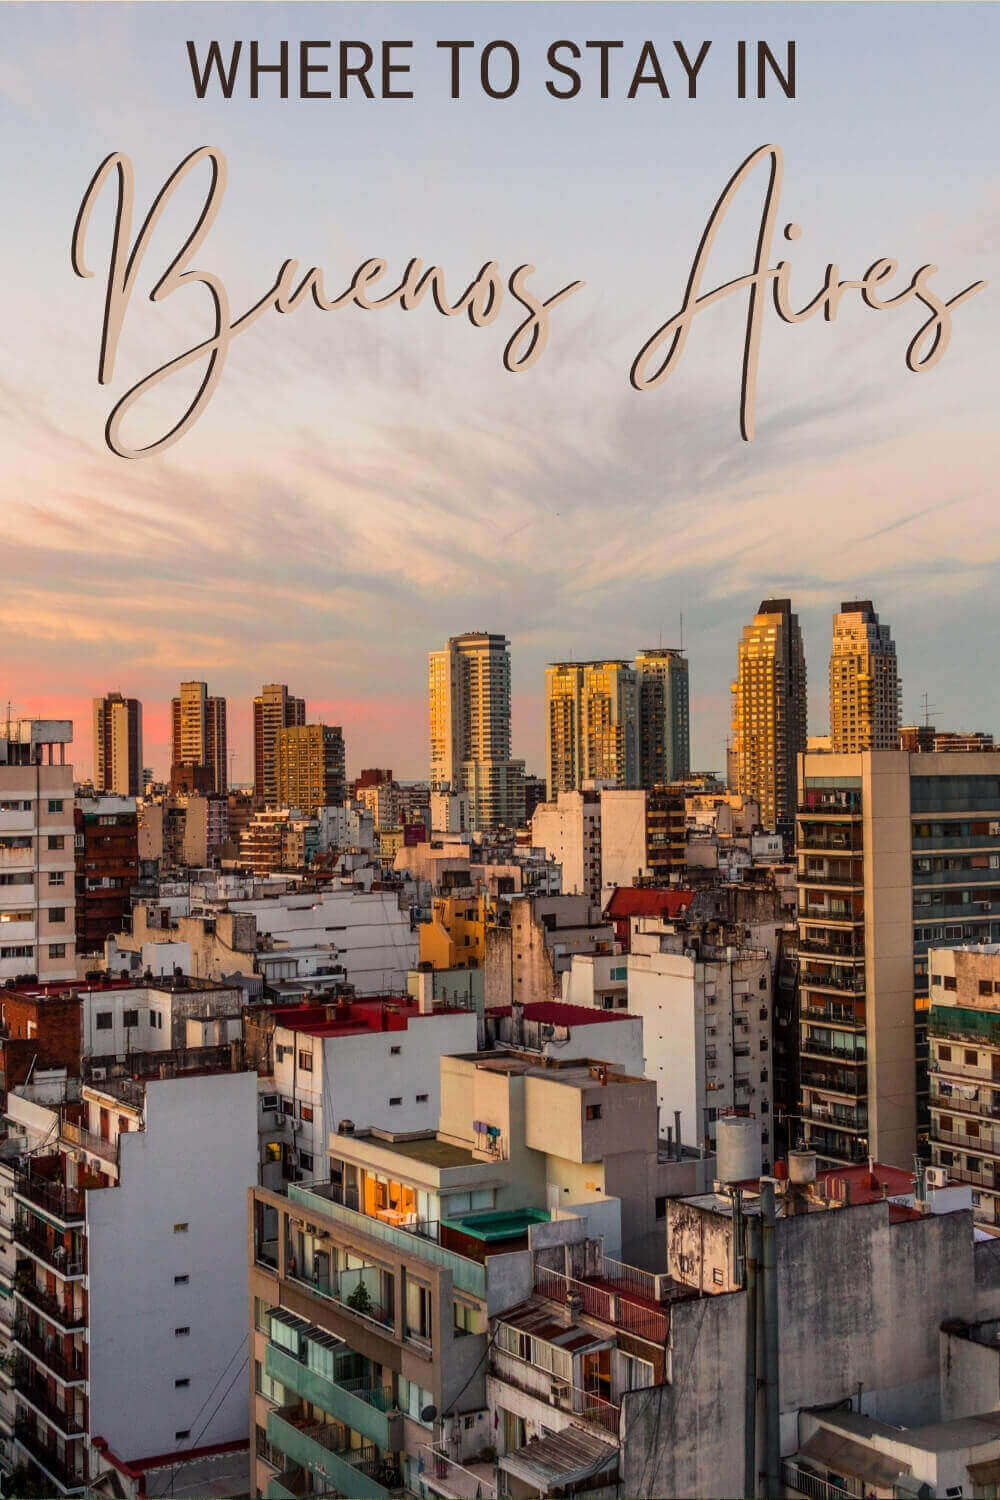 Discover where to stay in Buenos Aires - via @clautavani